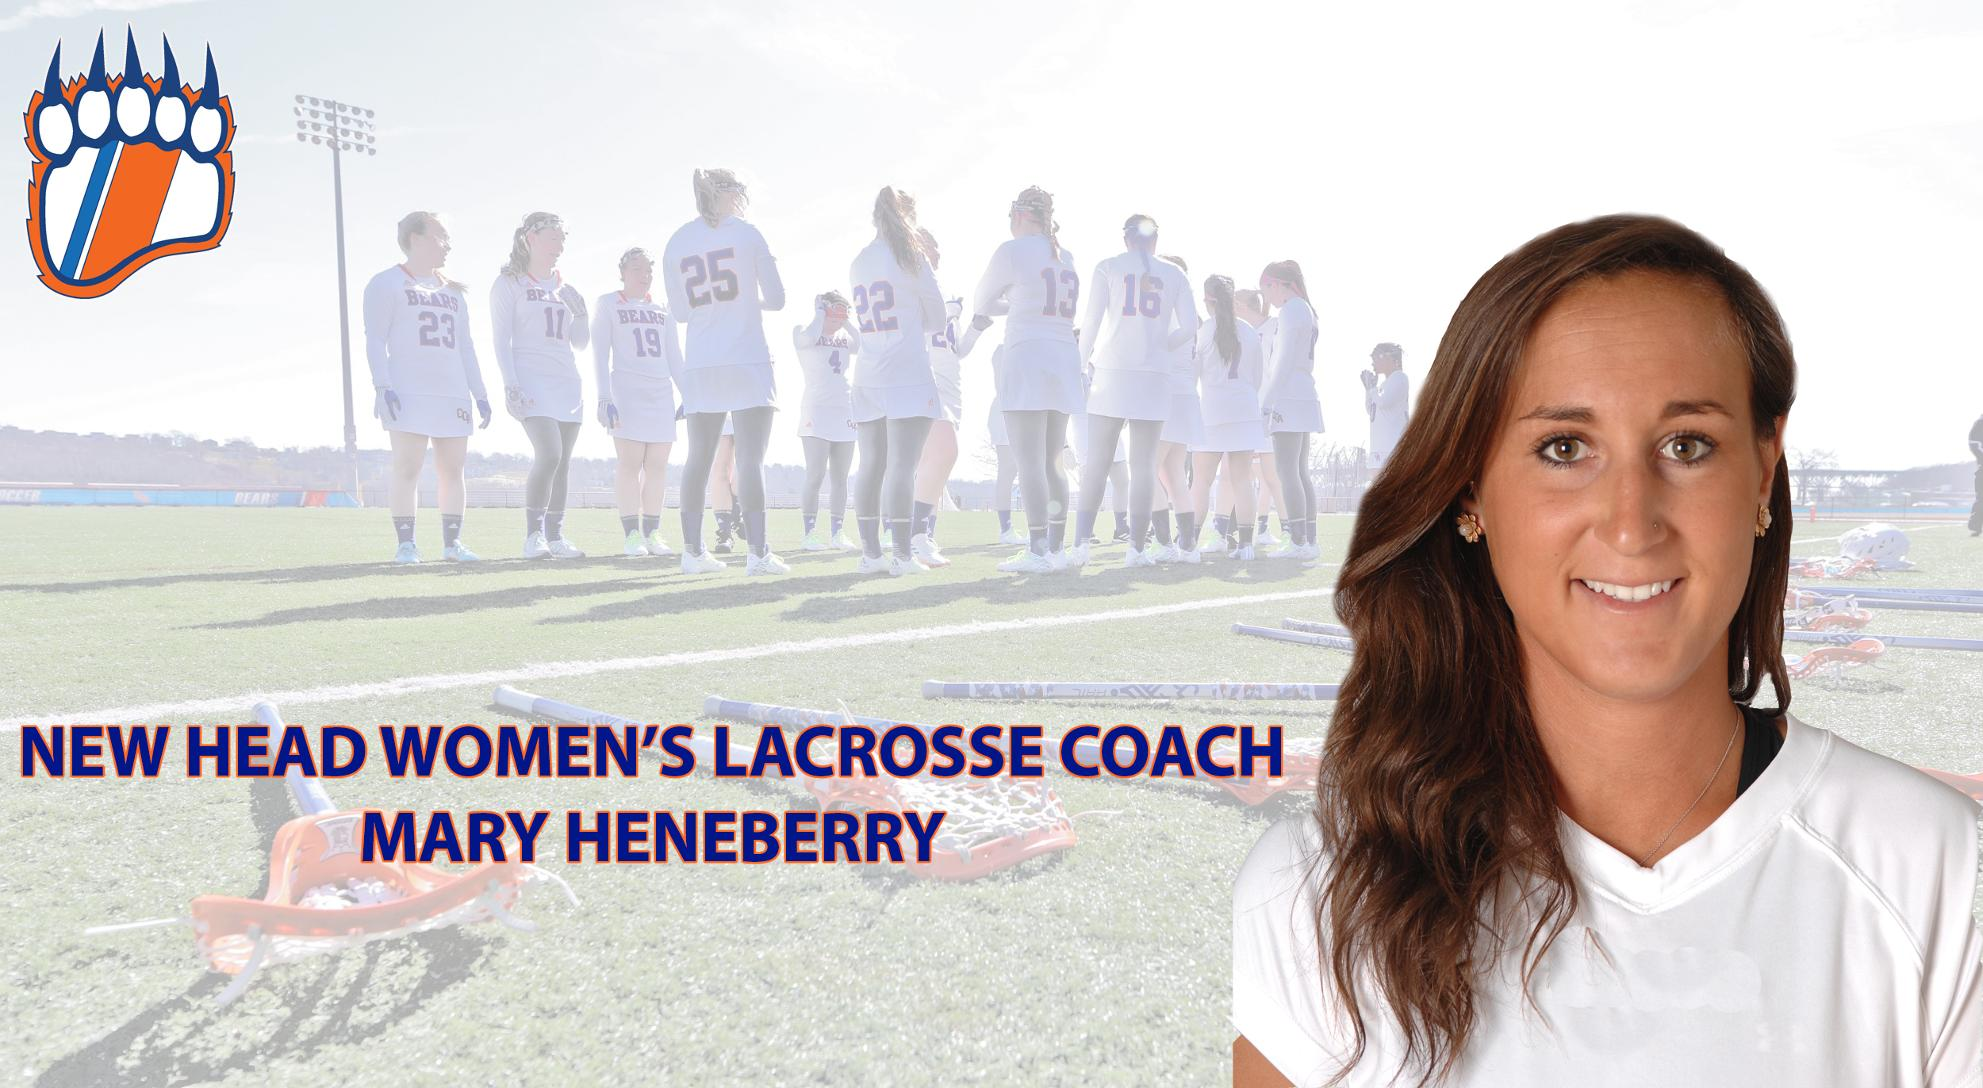 Heneberry Named Head Women's Lacrosse Coach